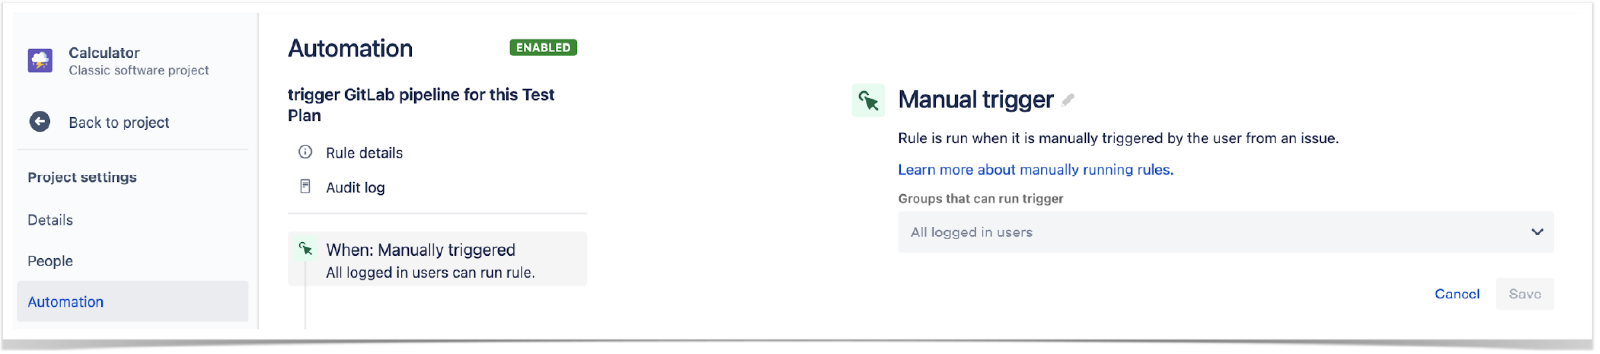 Create a new rule in Jira settings, under Automation